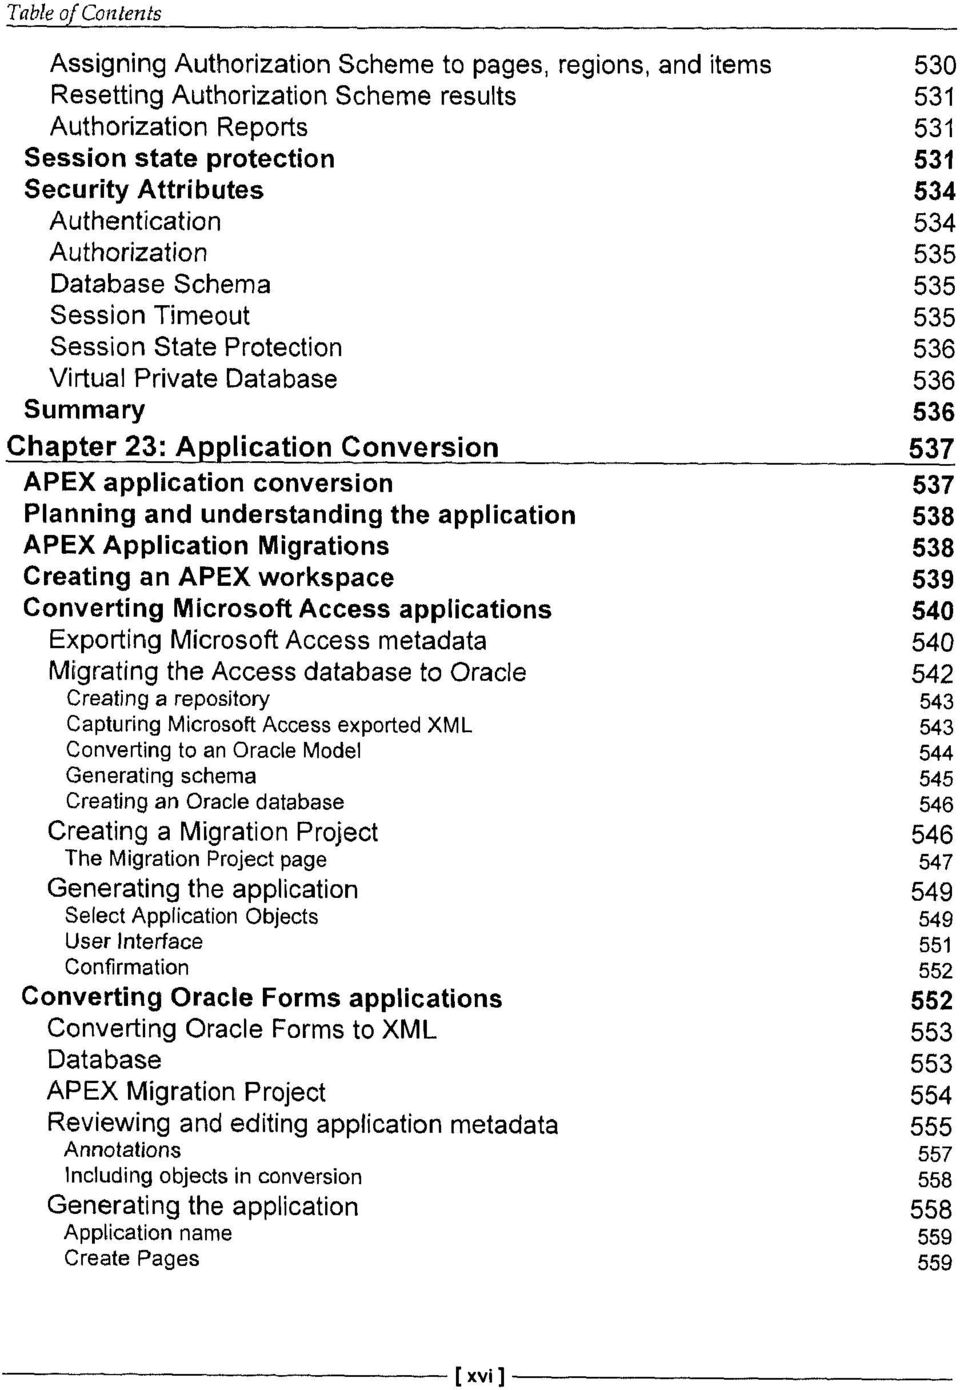 application conversion 537 Planning and understanding the application 538 APEX Application Migrations 538 Creating an APEX workspace 539 Converting Microsoft Access applications 540 Exporting